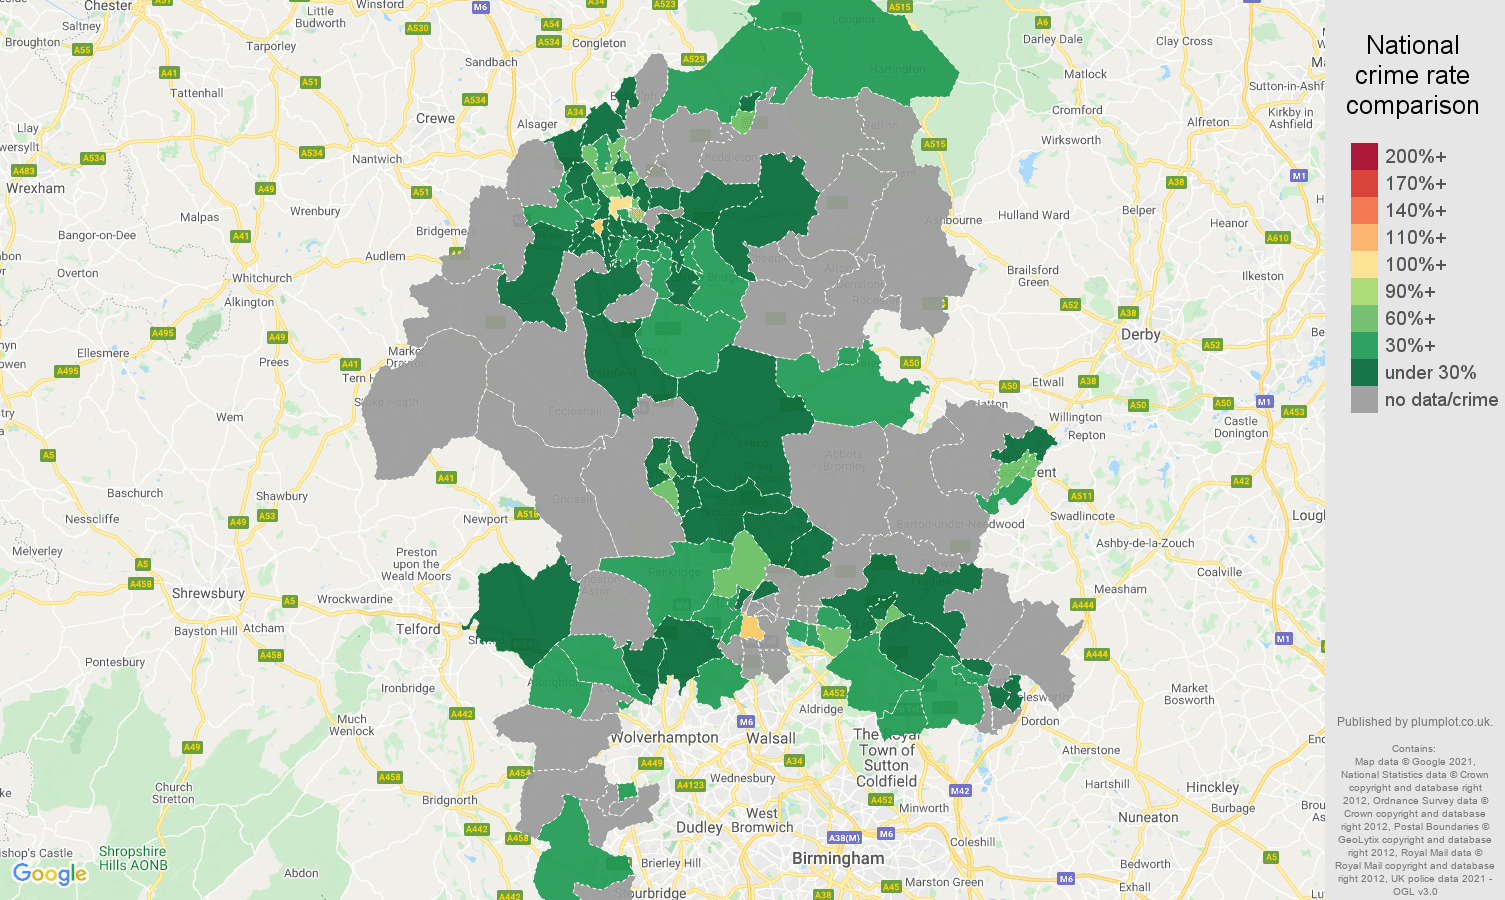 Staffordshire theft from the person crime rate comparison map